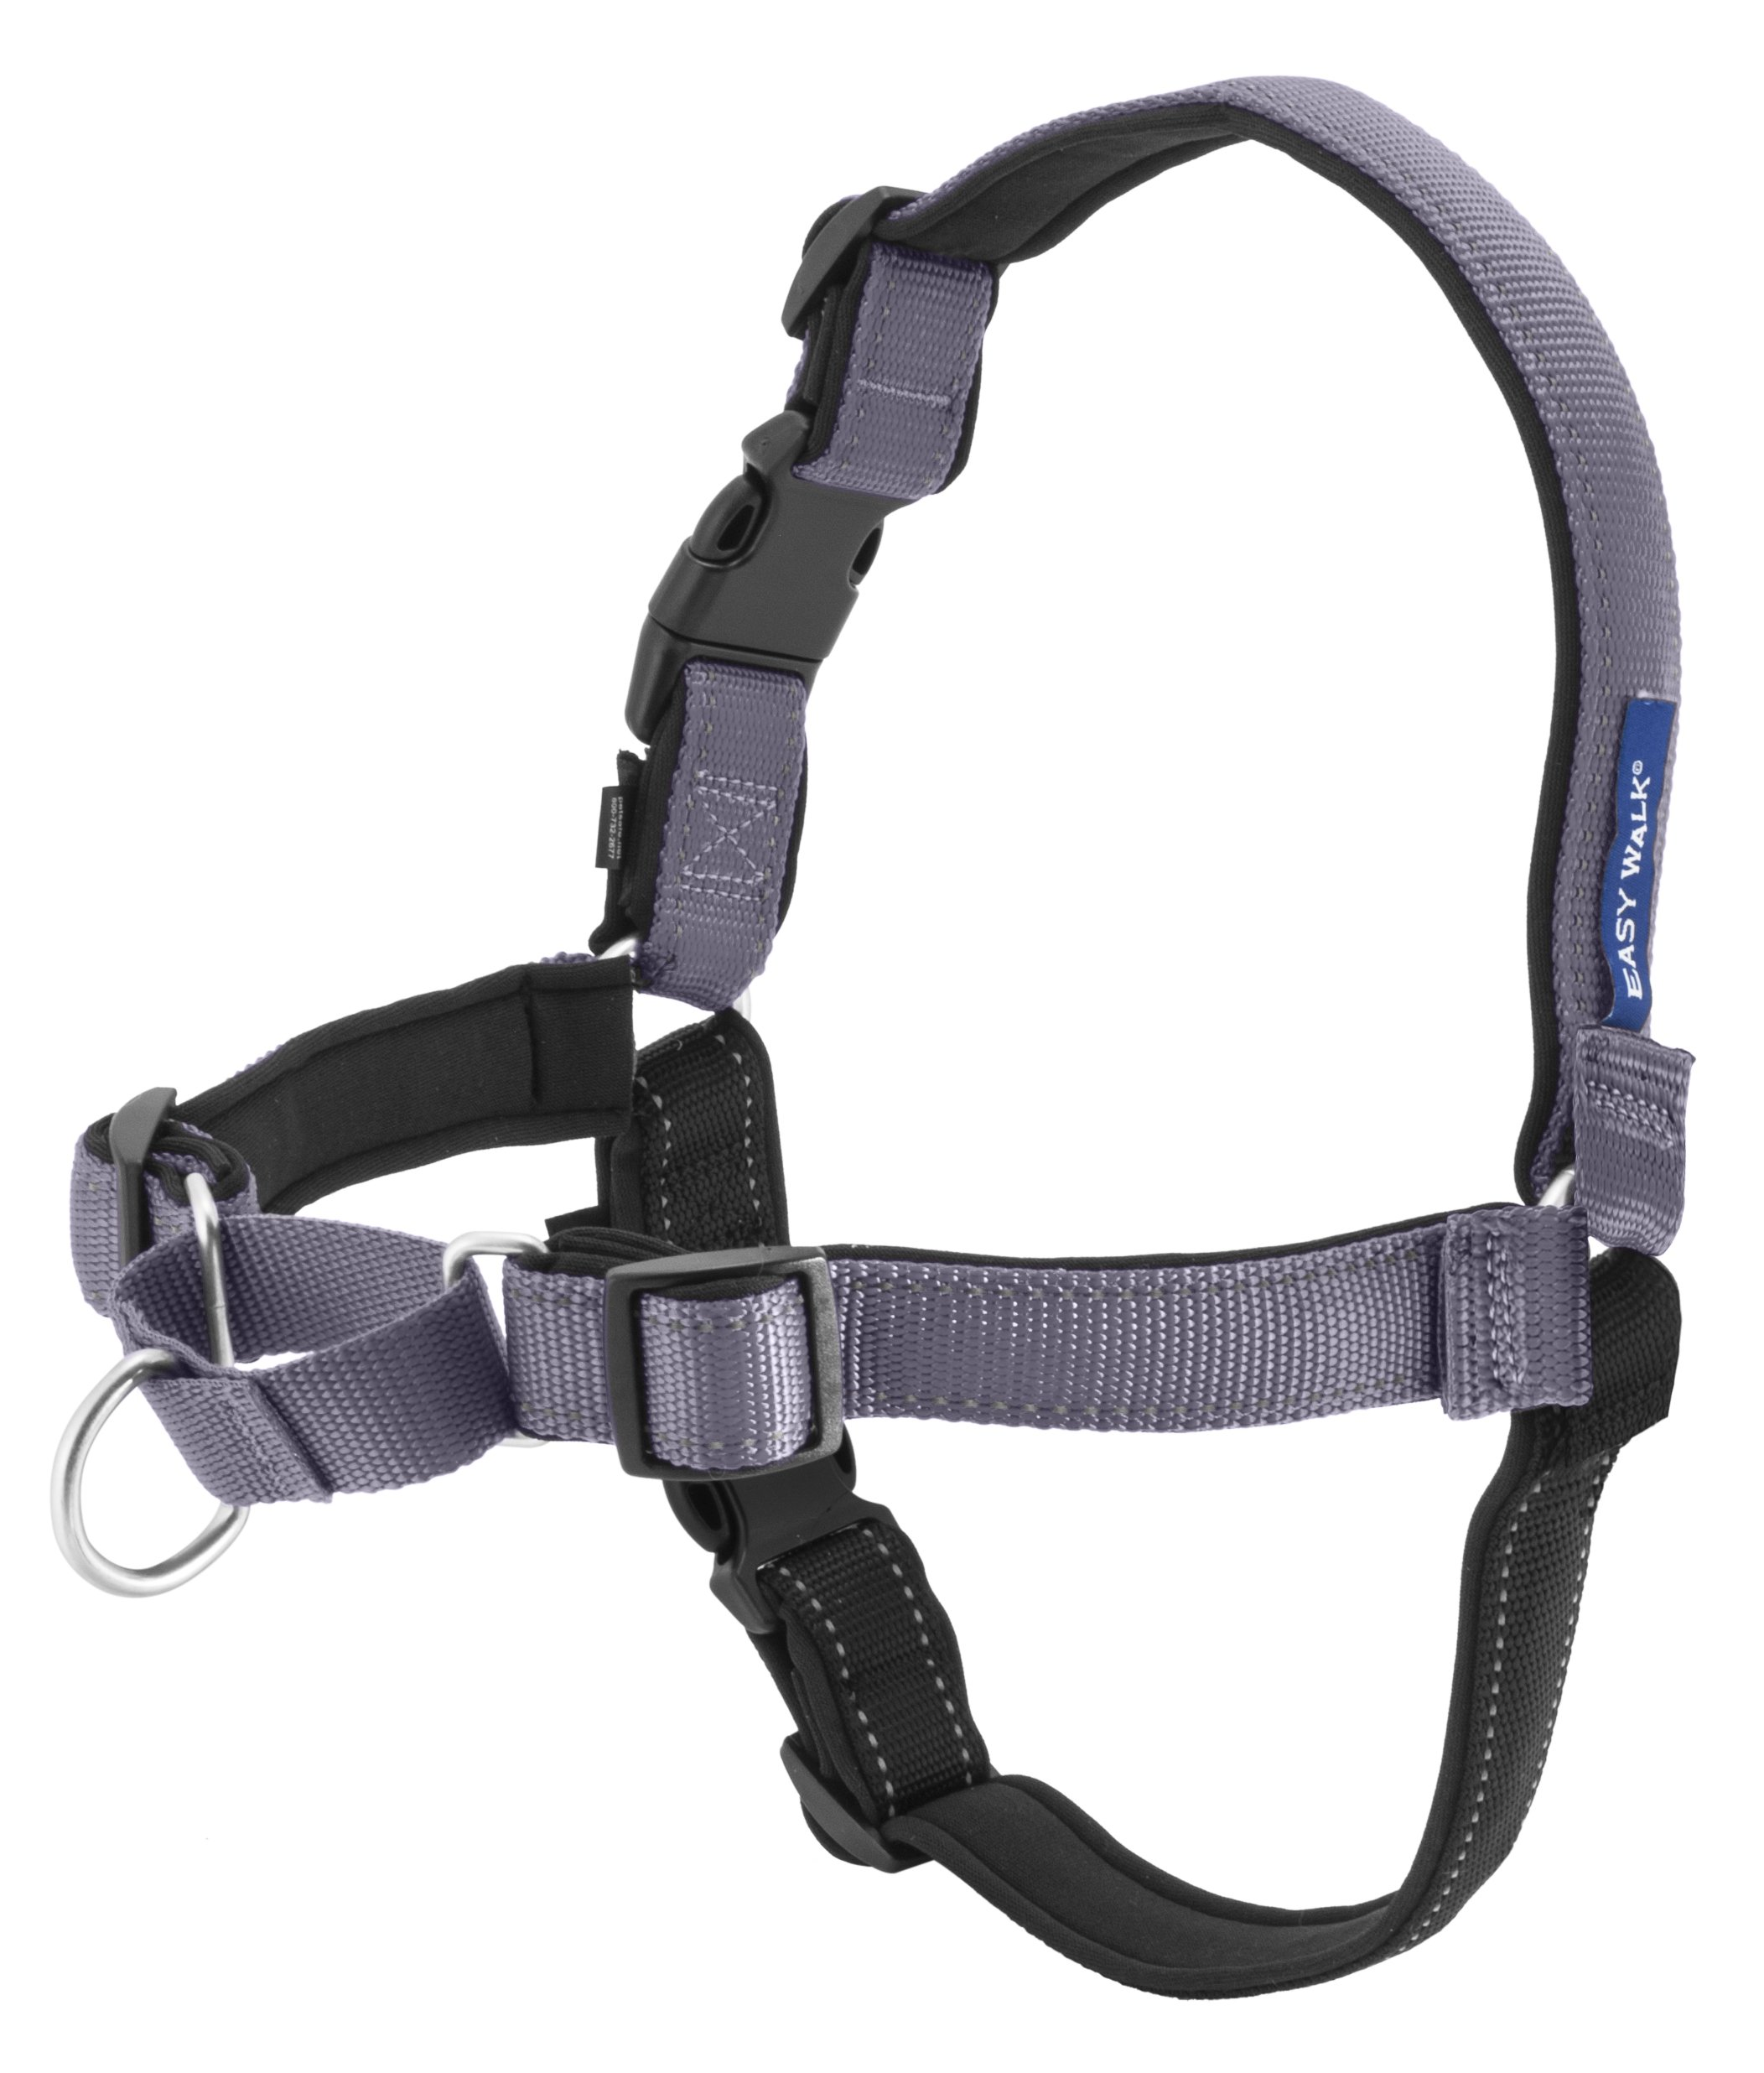 Petsafe Easy Walk harness in gray and black